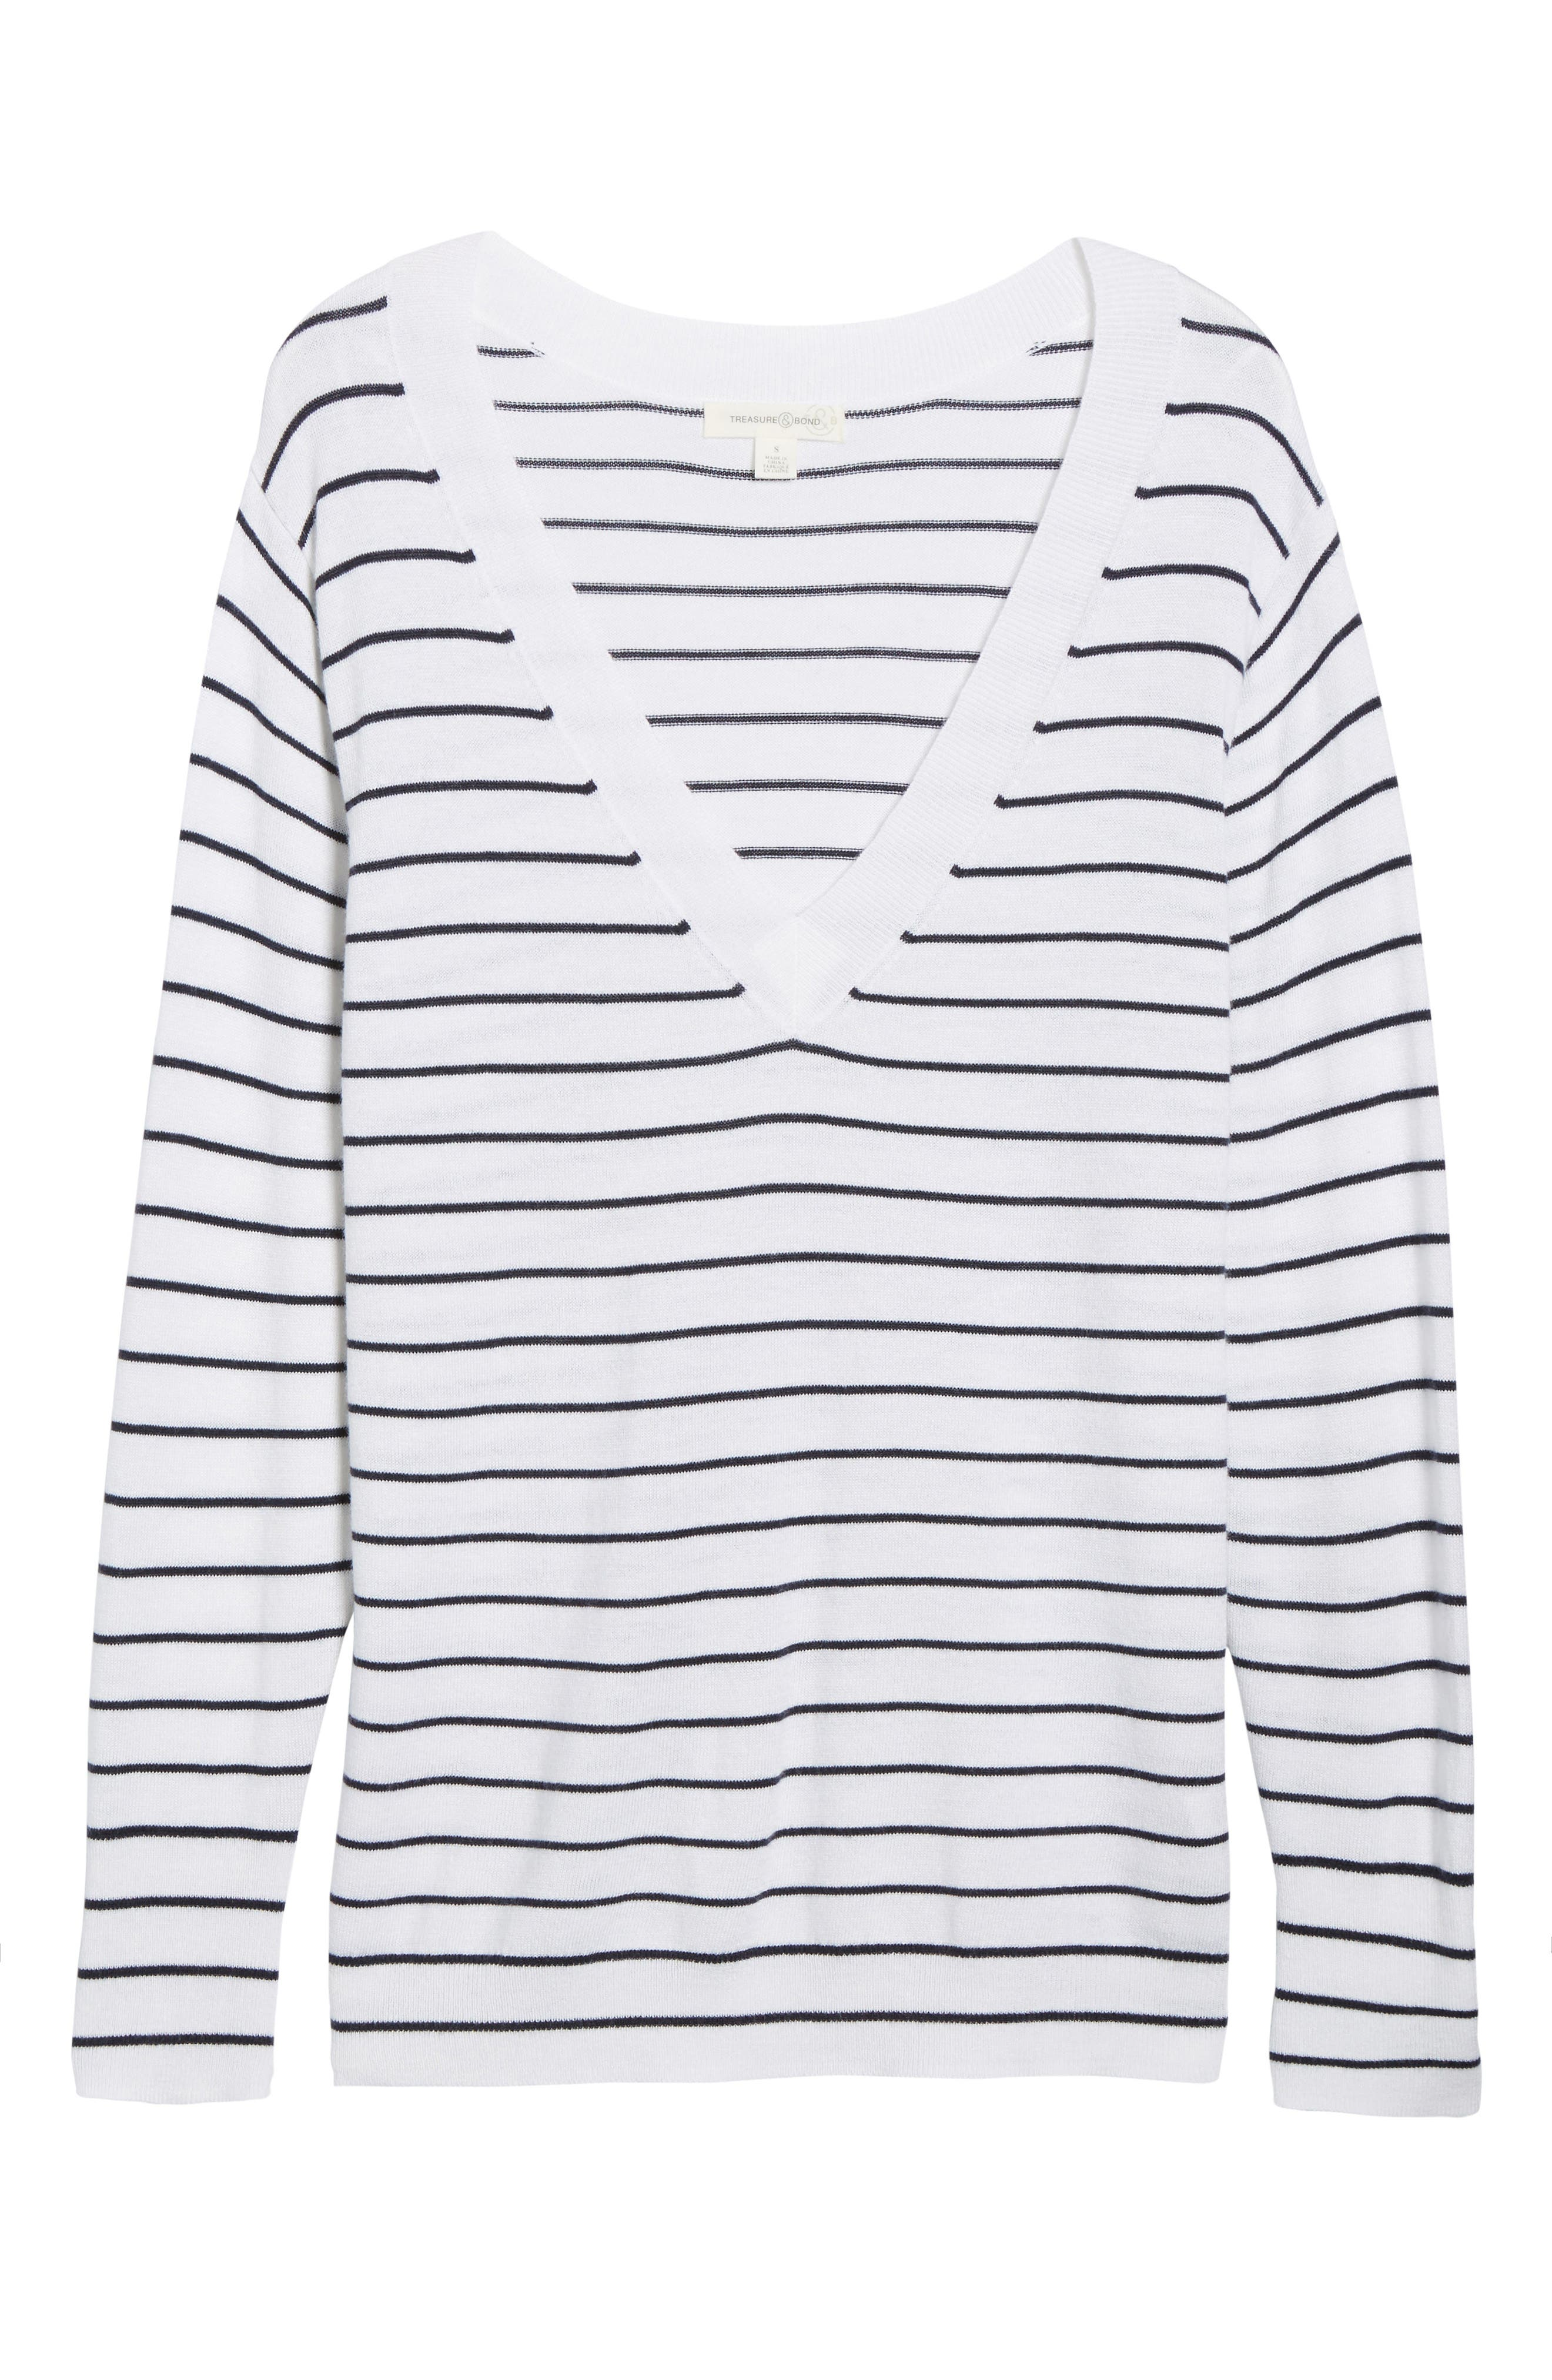 Slouchy Sweater,                             Alternate thumbnail 6, color,                             White Little Stripe